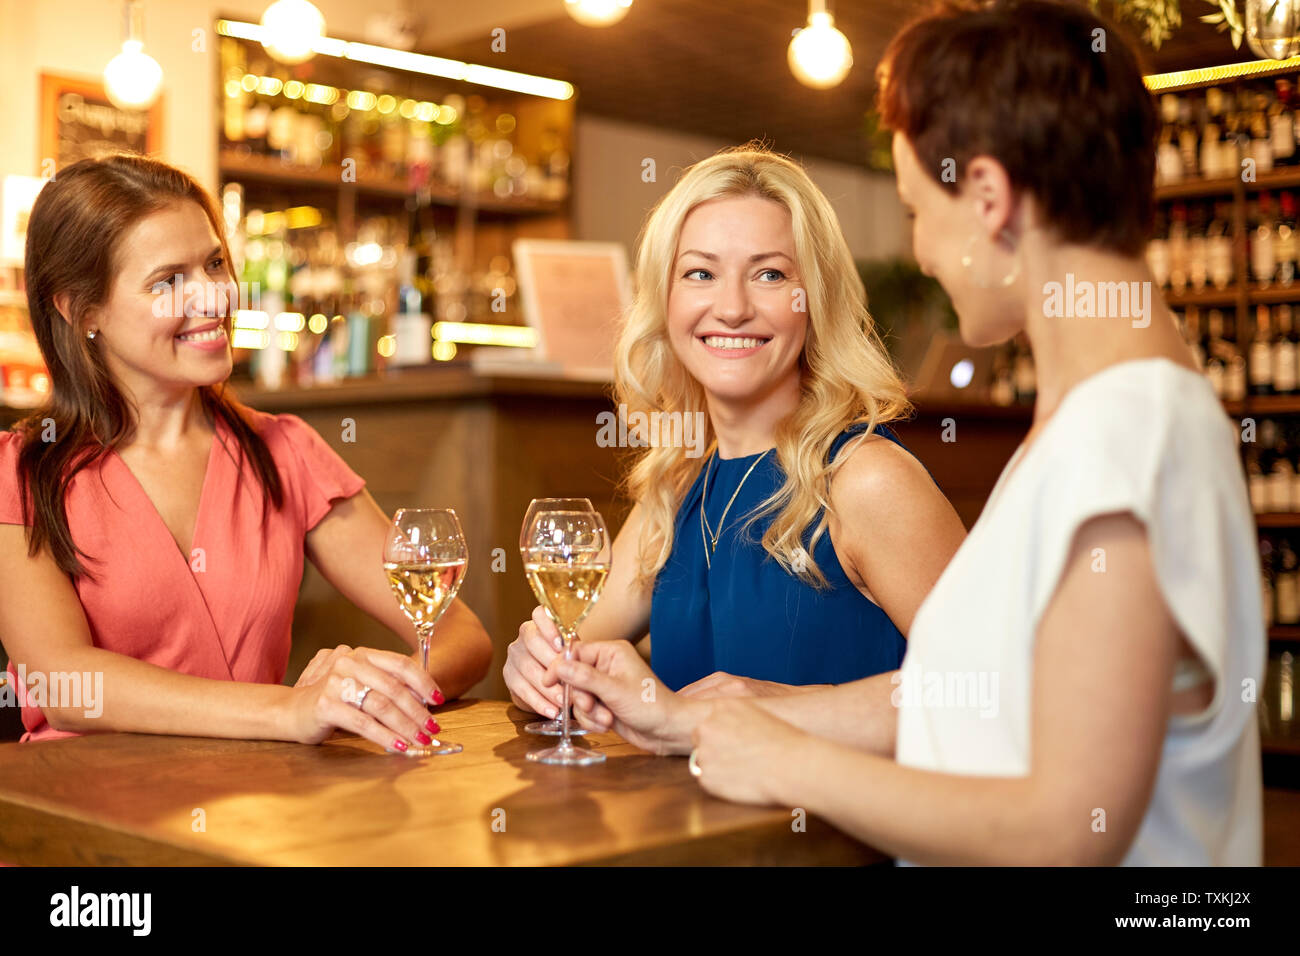 happy women drinking wine at bar or restaurant - Stock Image